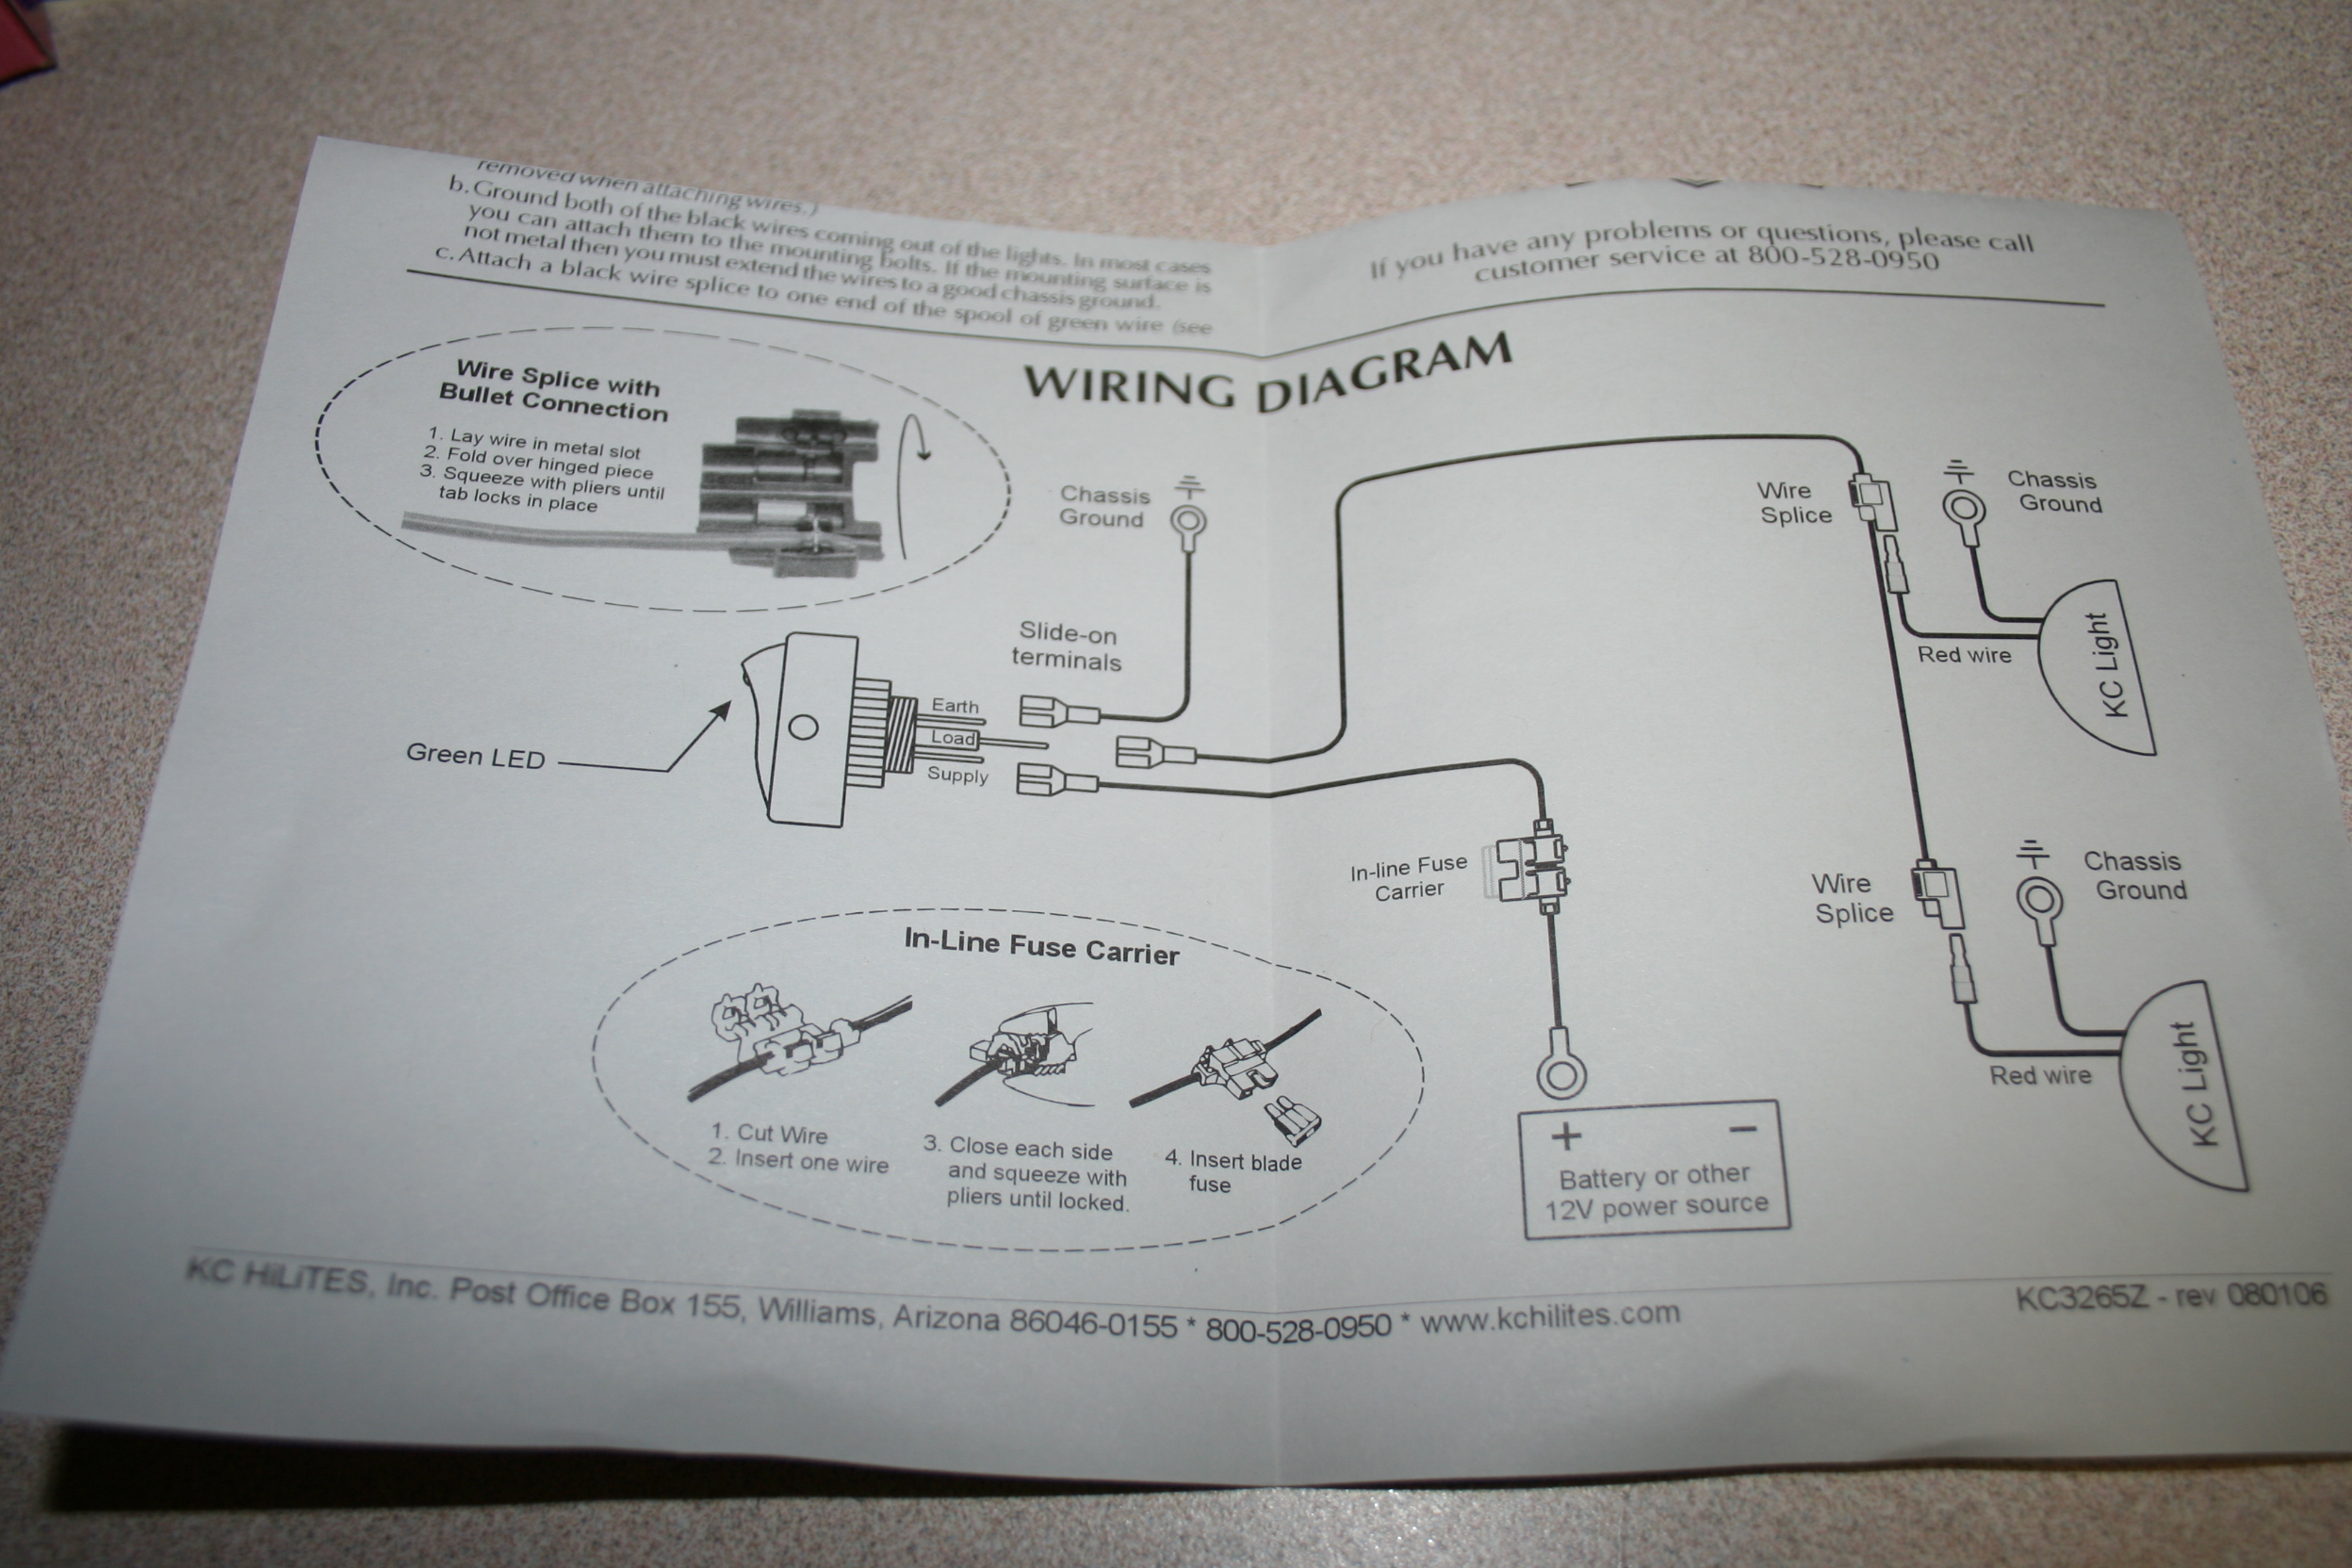 wiring diagram for 12 volt relay single phase asynchronous motor offroad lights with stock foglight harness? - ranger-forums the ultimate ford ranger ...